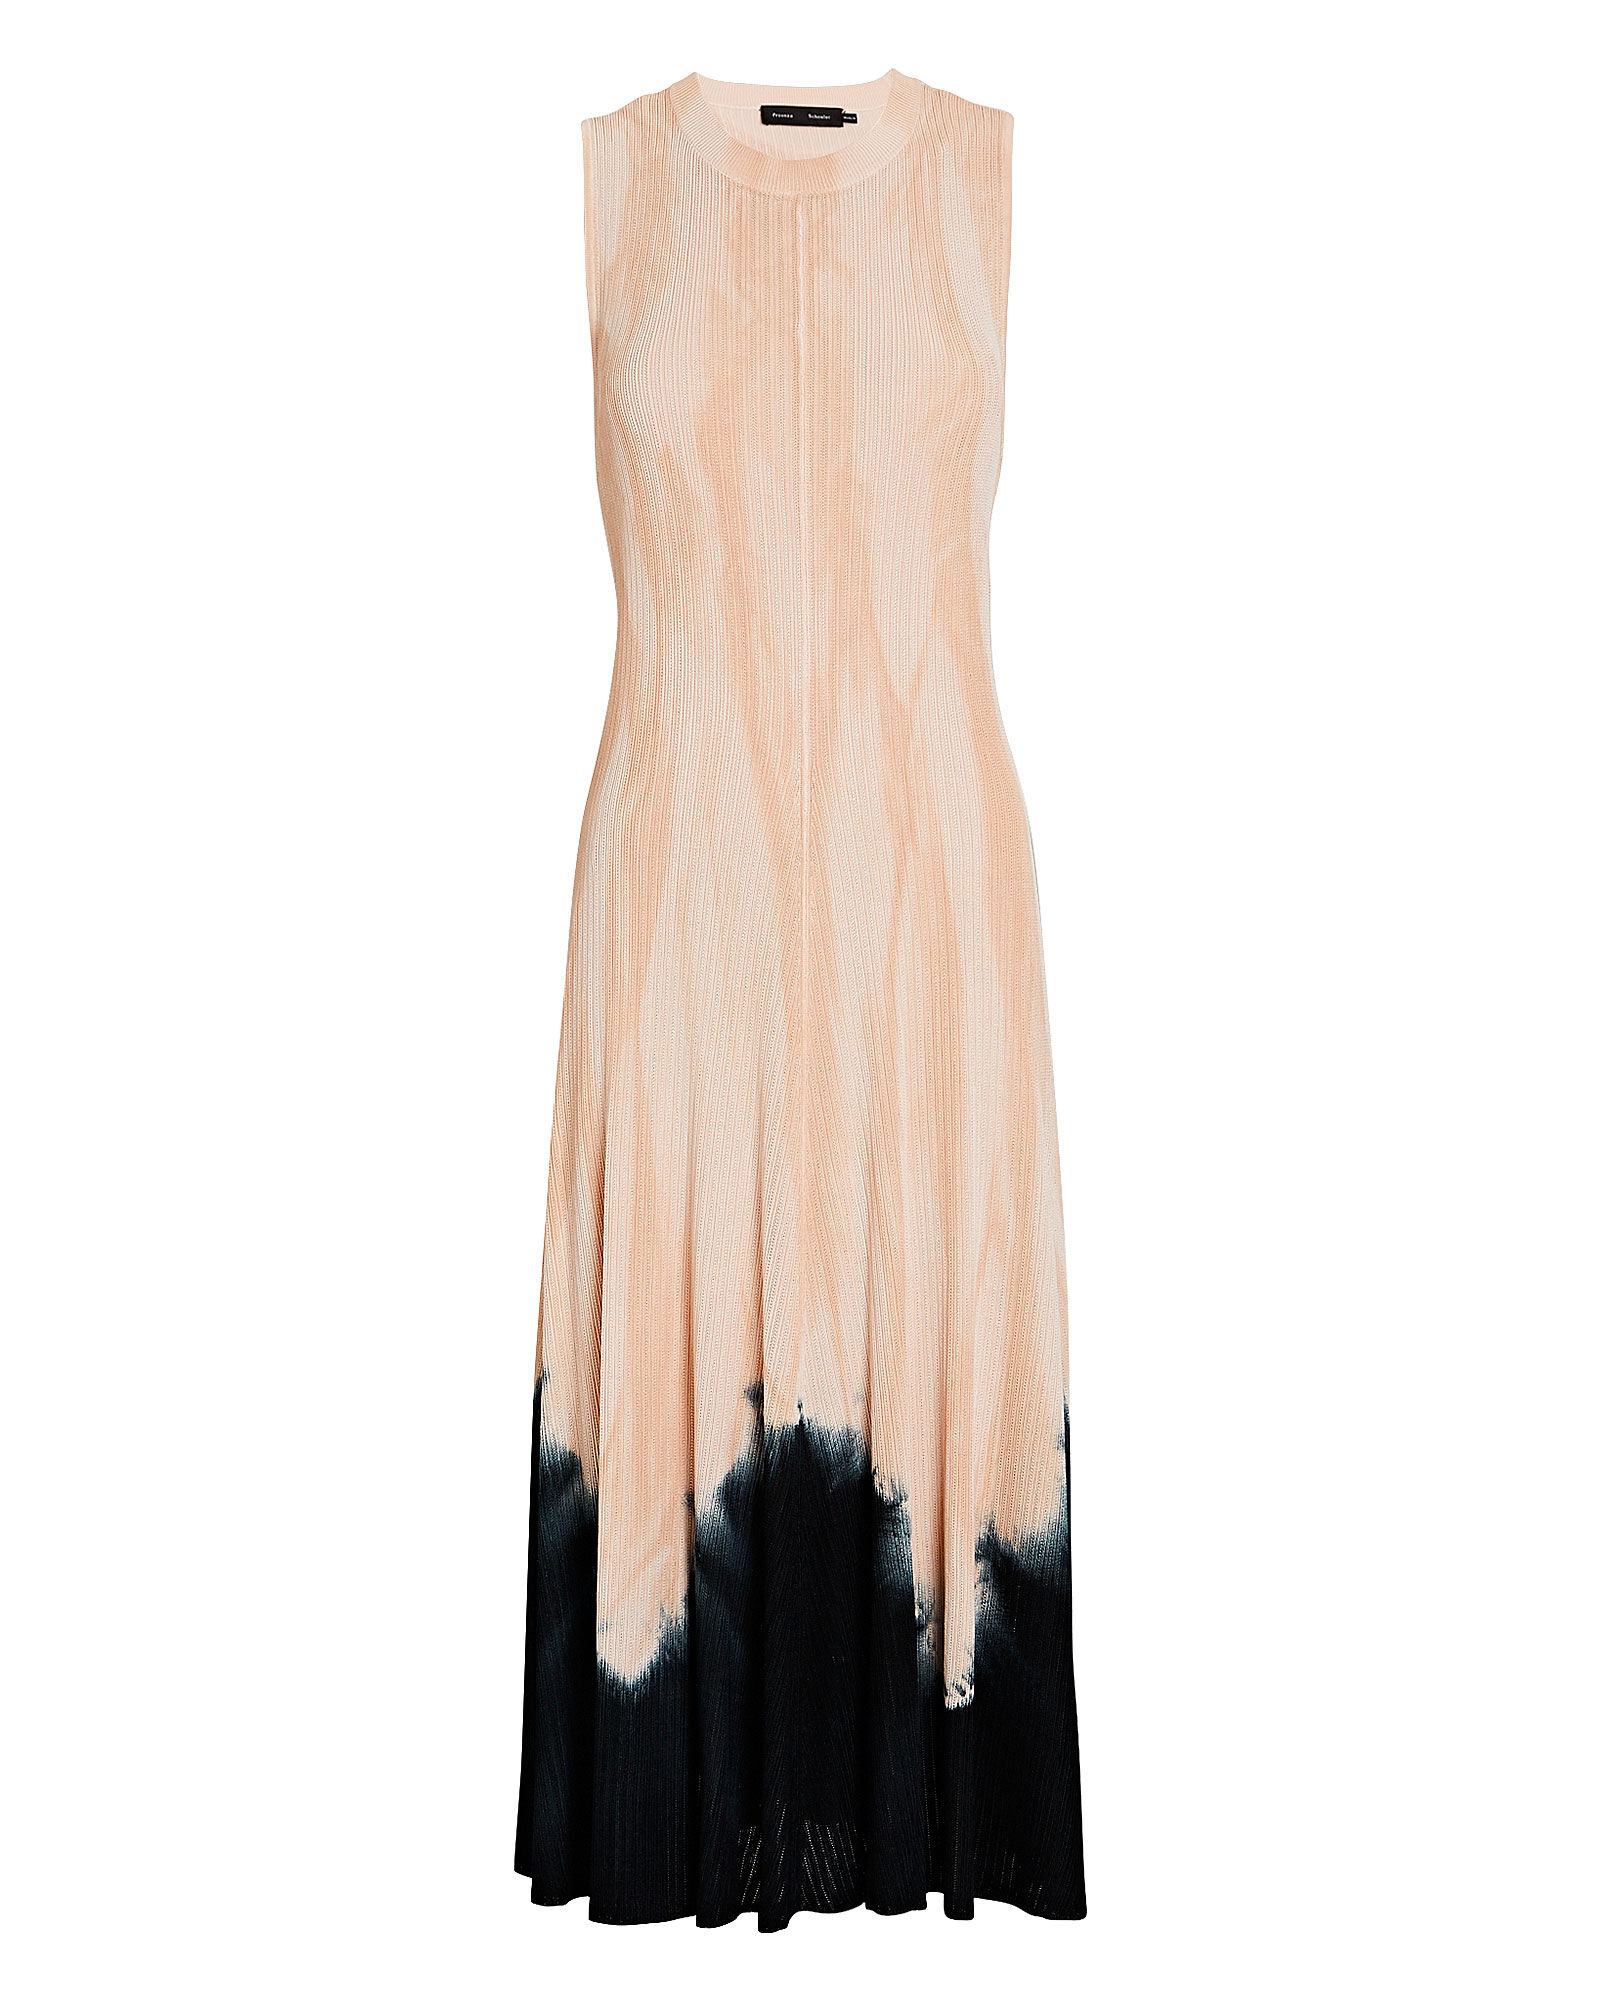 Knotted Tie-Dye Knit Dress, PINK/BLACK, hi-res